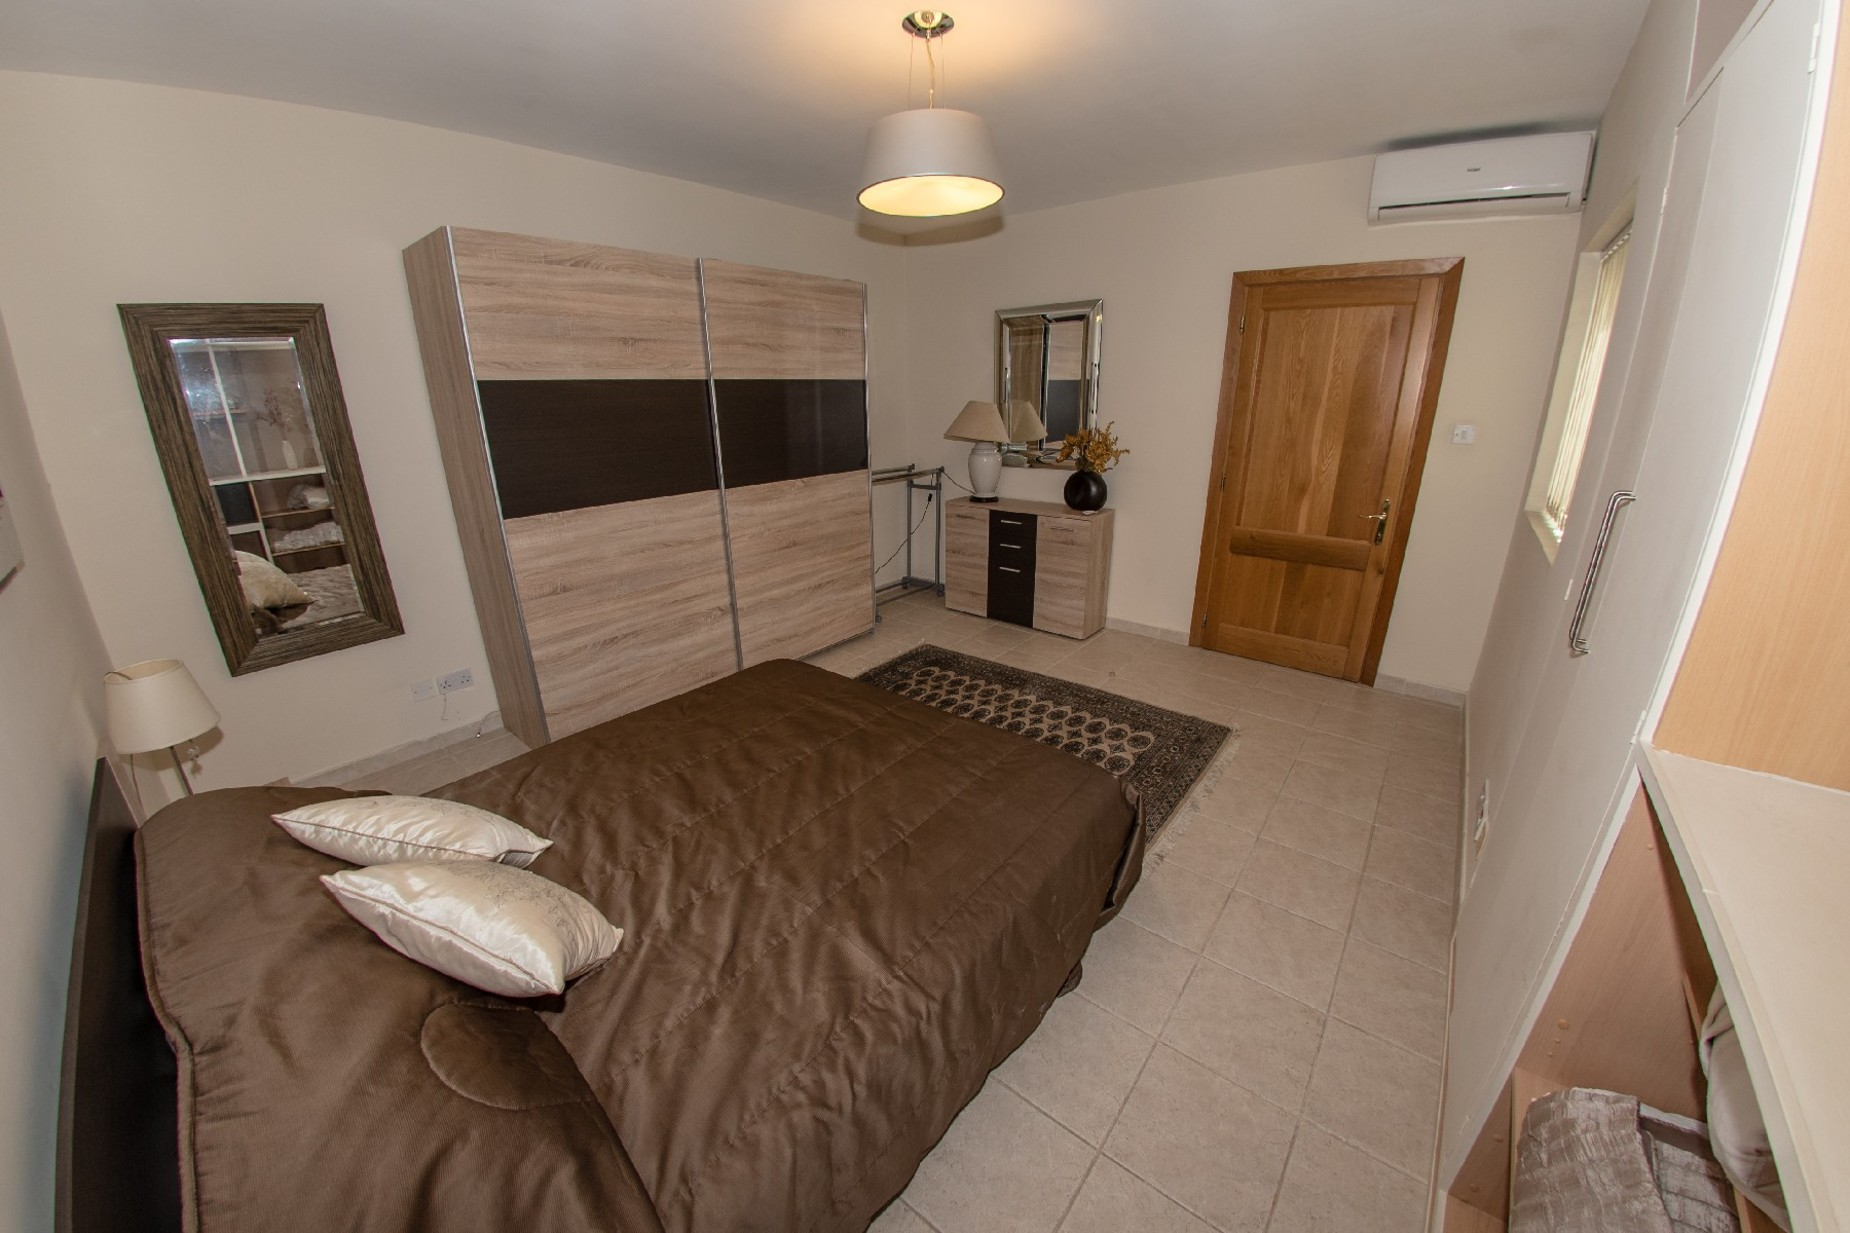 3 bed Apartment For Rent in Swieqi, Swieqi - thumb 7